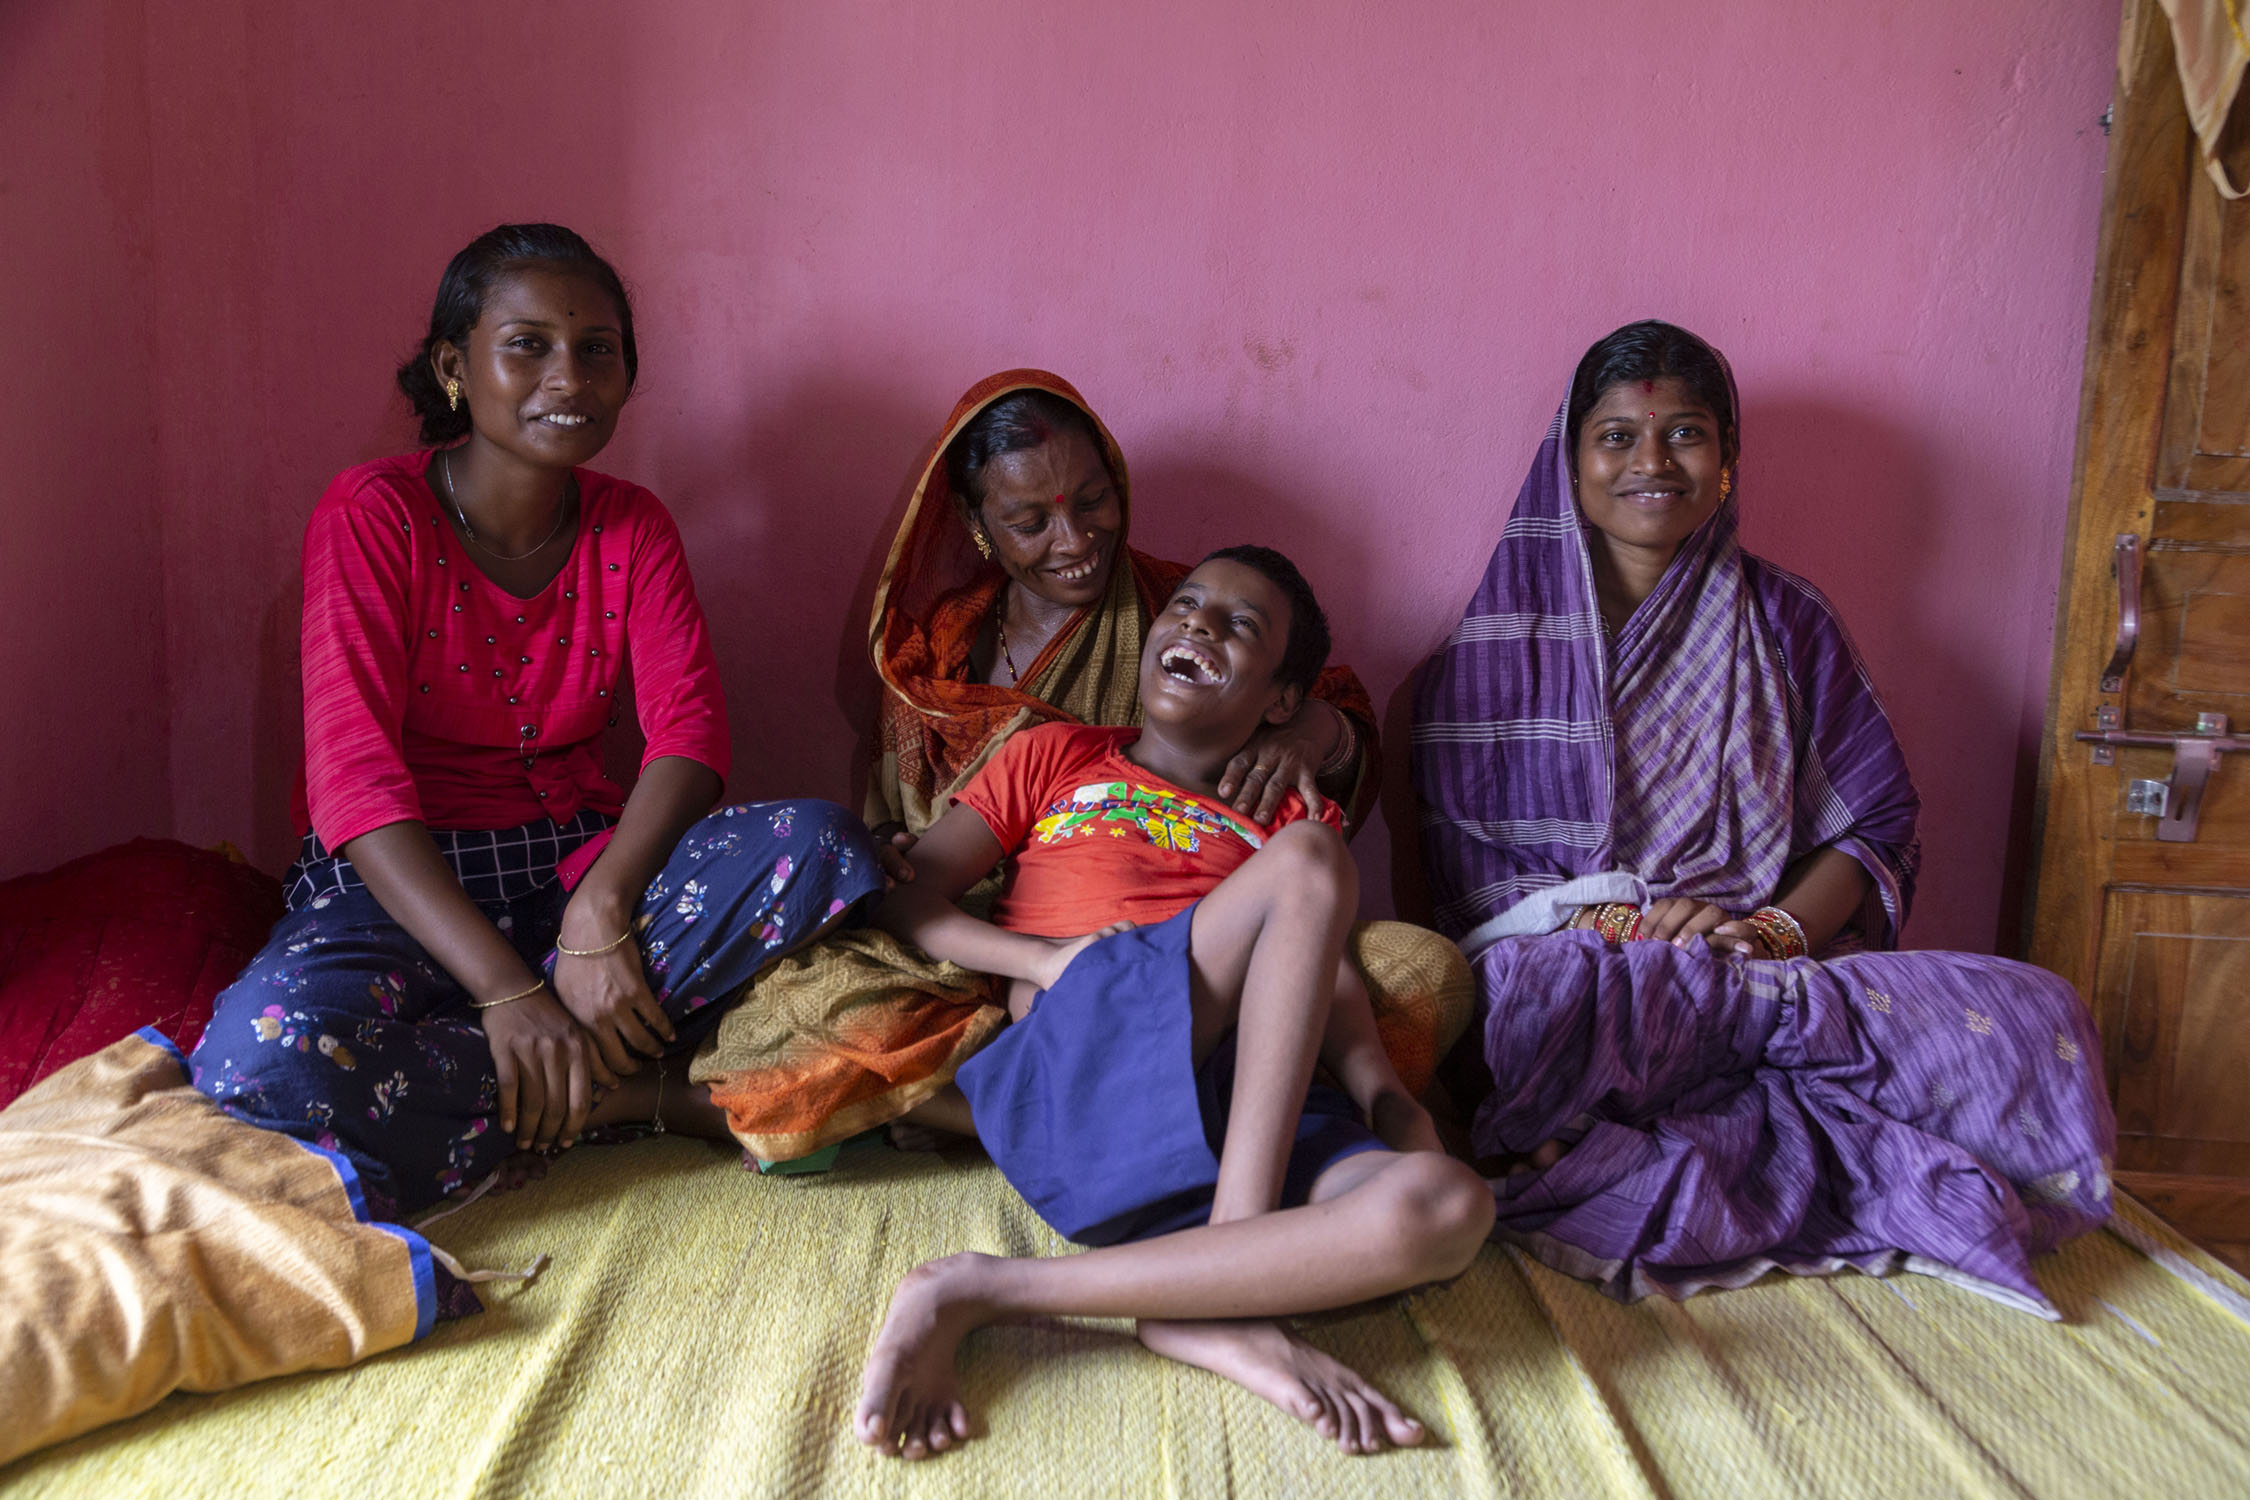 Asis and his family sit on a cream mat on a wooden cot. From left to right: his older sister Liza Behera (15), mother Tanulata Behera (46) and eldest sister Lika Behera (19). Asis is leaning back against his mother's shoulder and laughing. The others are smiling broadly. Liza wears a magenta top and purple skirt printed with small pink, blue and white flowers. Tanulata wears a sari in a red, orange and brown design, with her pallu covering her head. Lika is dressed in a sari with a purple and white design and has draped her pallu over her head.